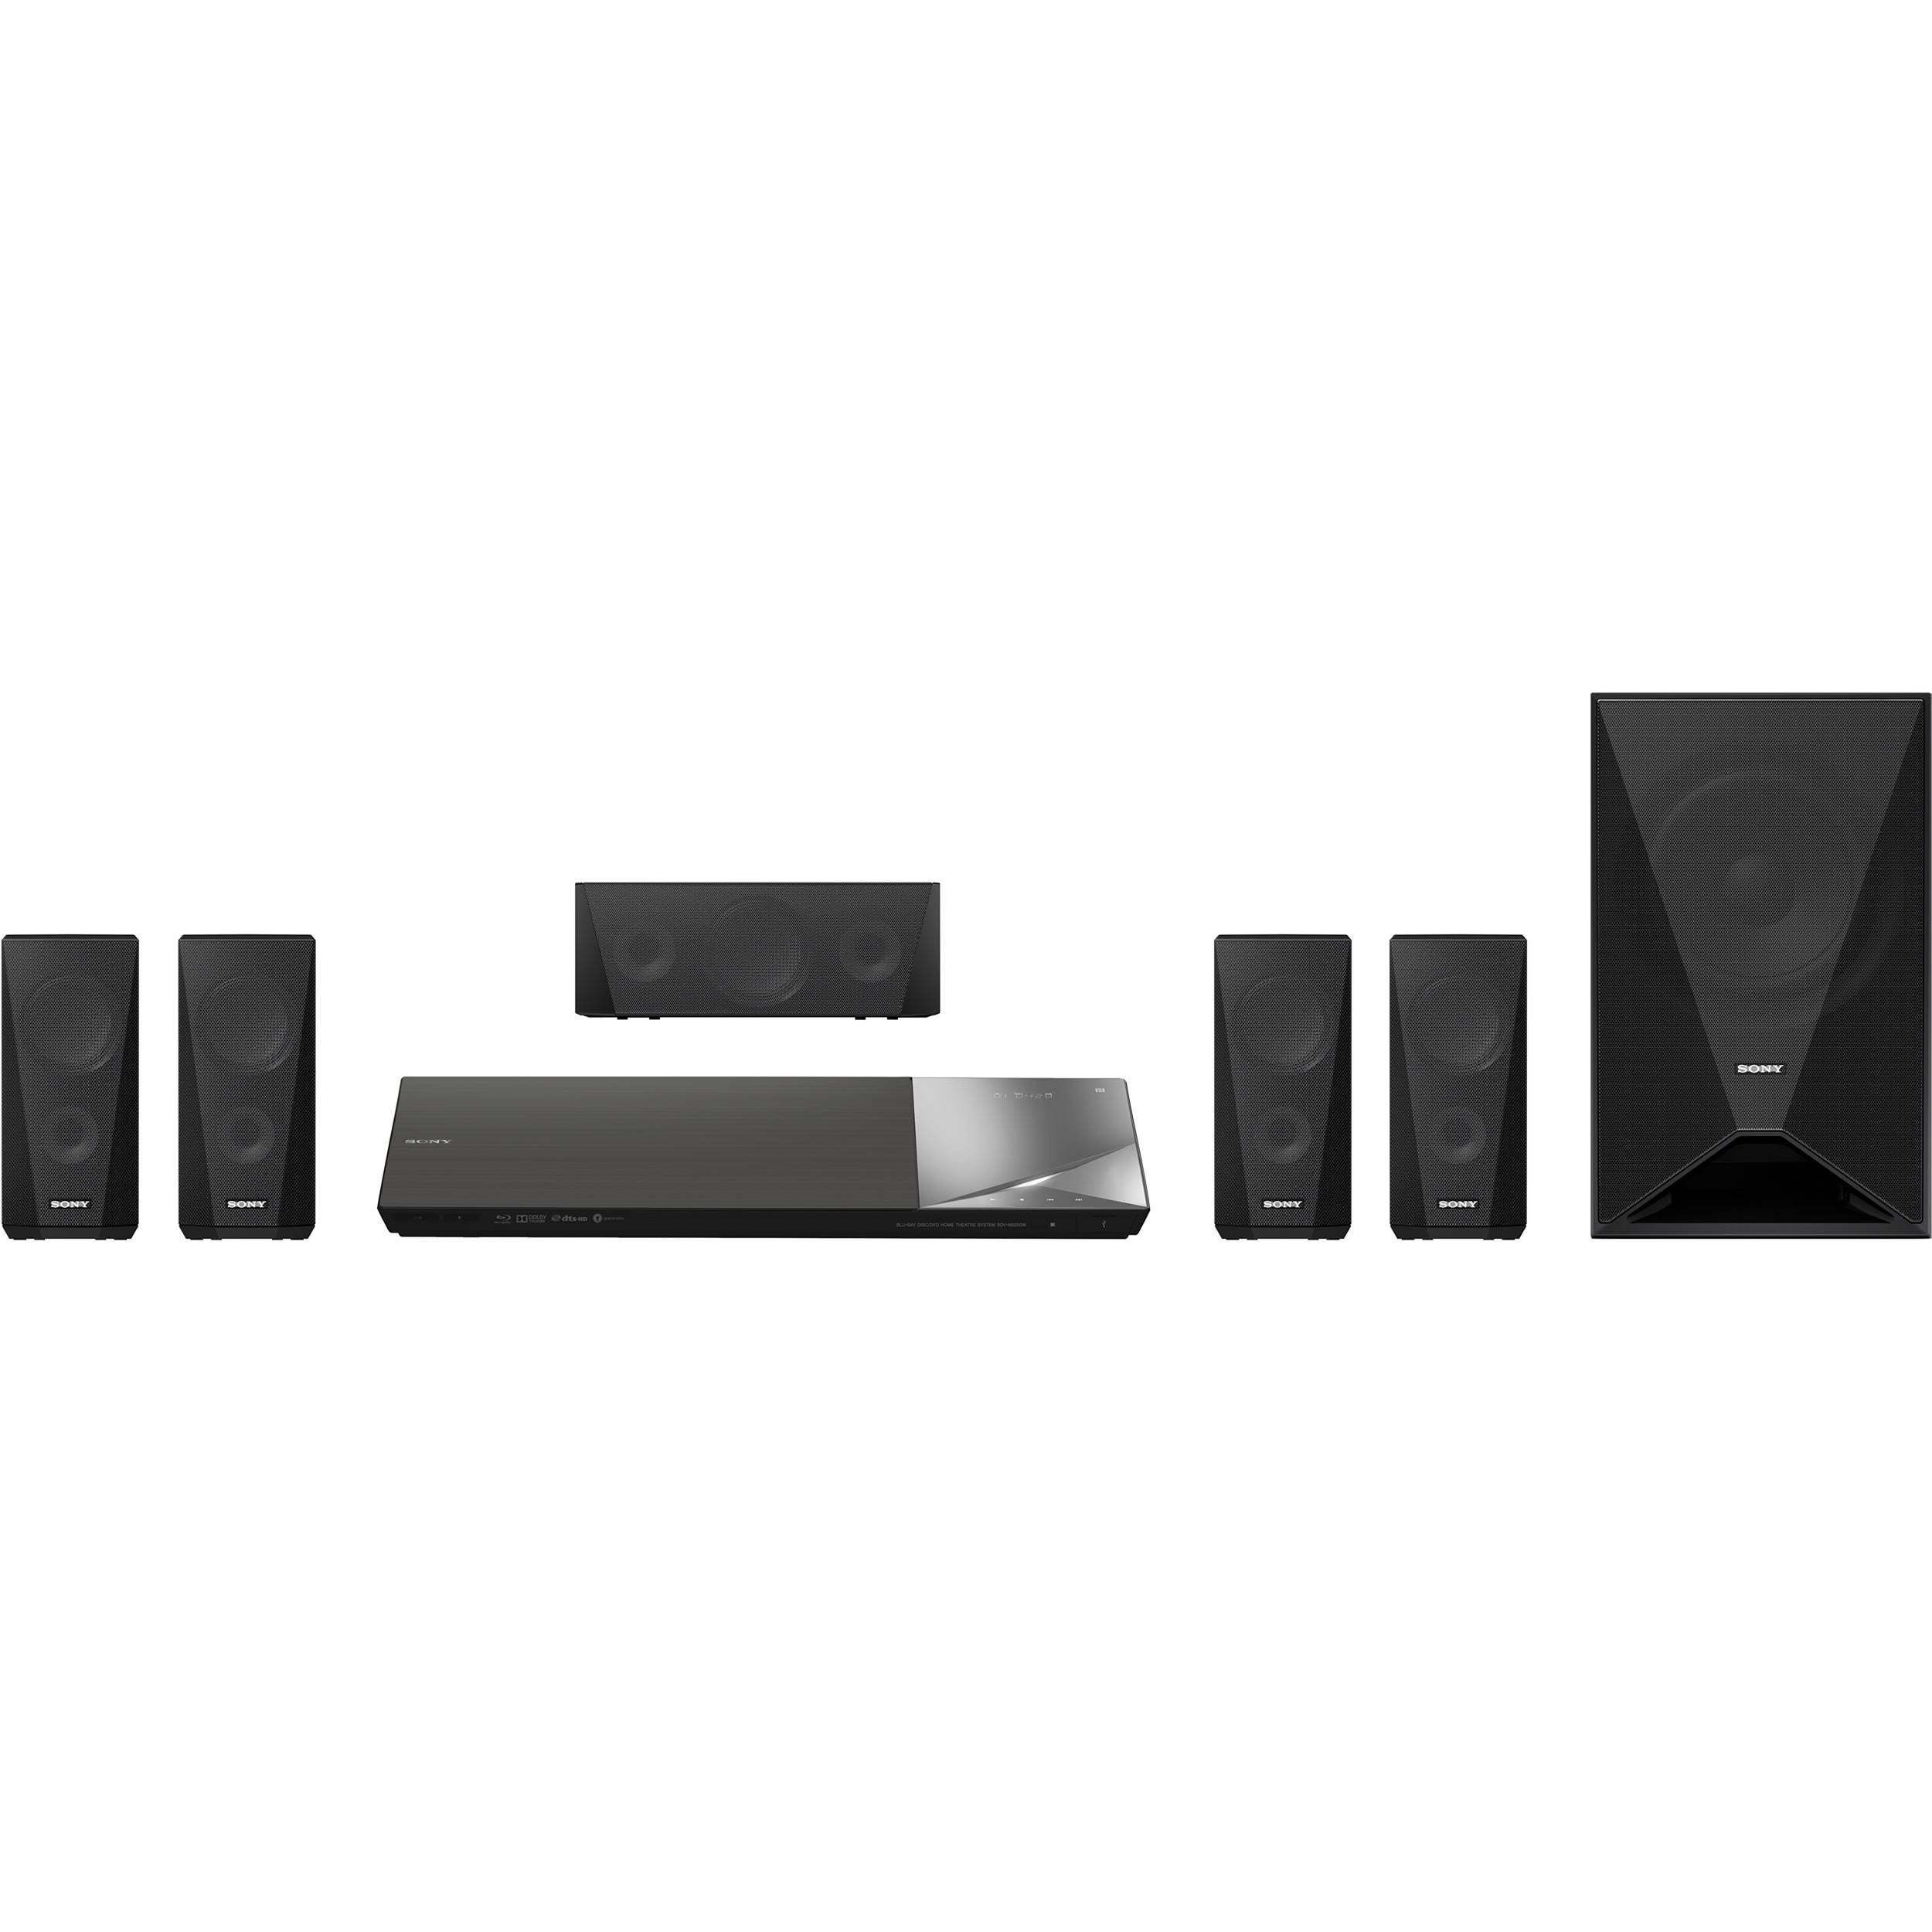 Sony bdv n5200w 5 1 channel 1000w 3d smart blu ray home theater system